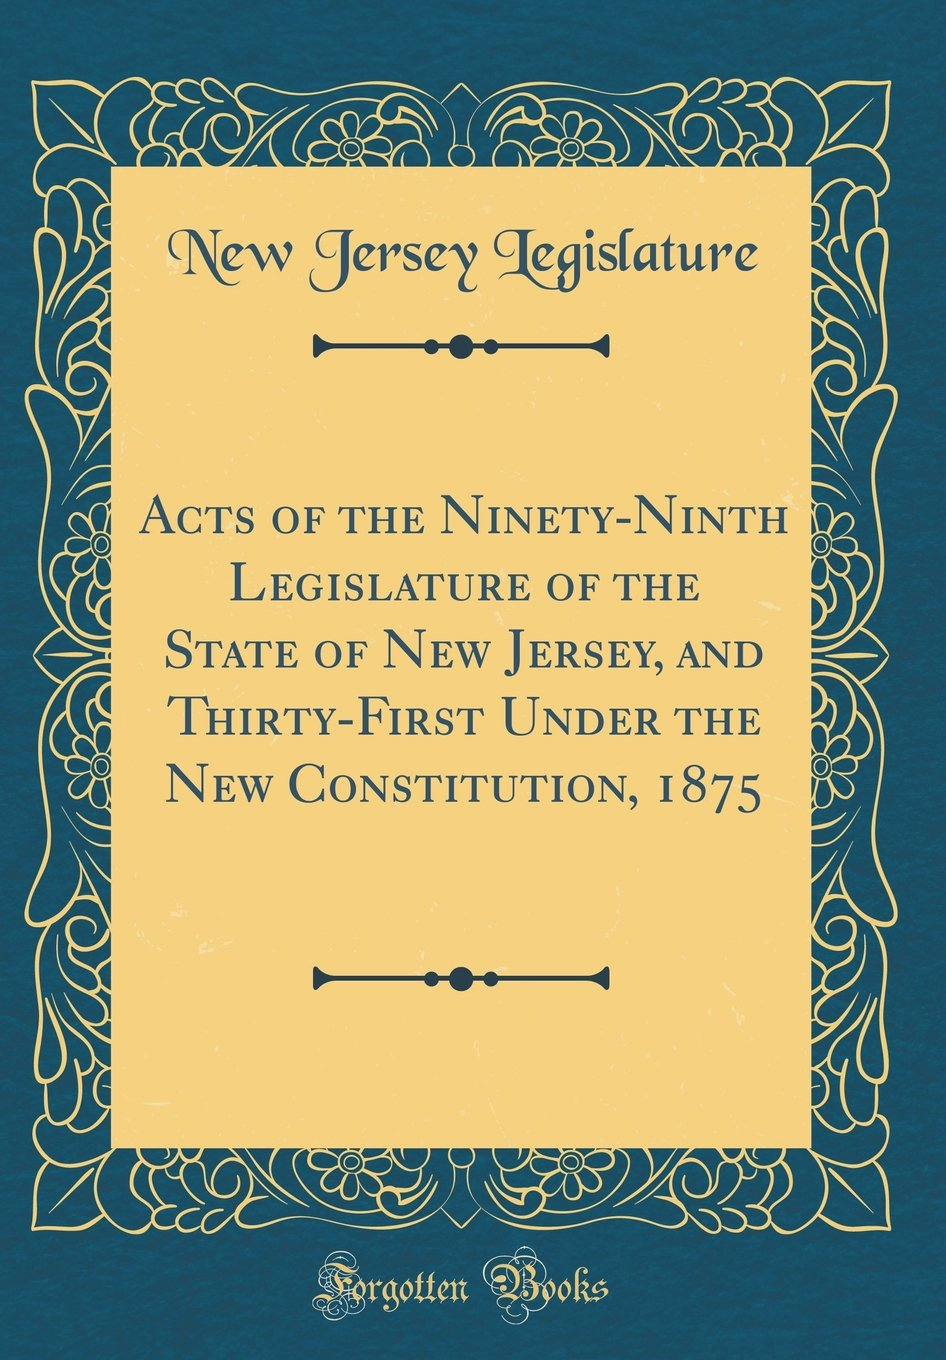 Download Acts of the Ninety-Ninth Legislature of the State of New Jersey, and Thirty-First Under the New Constitution, 1875 (Classic Reprint) pdf epub